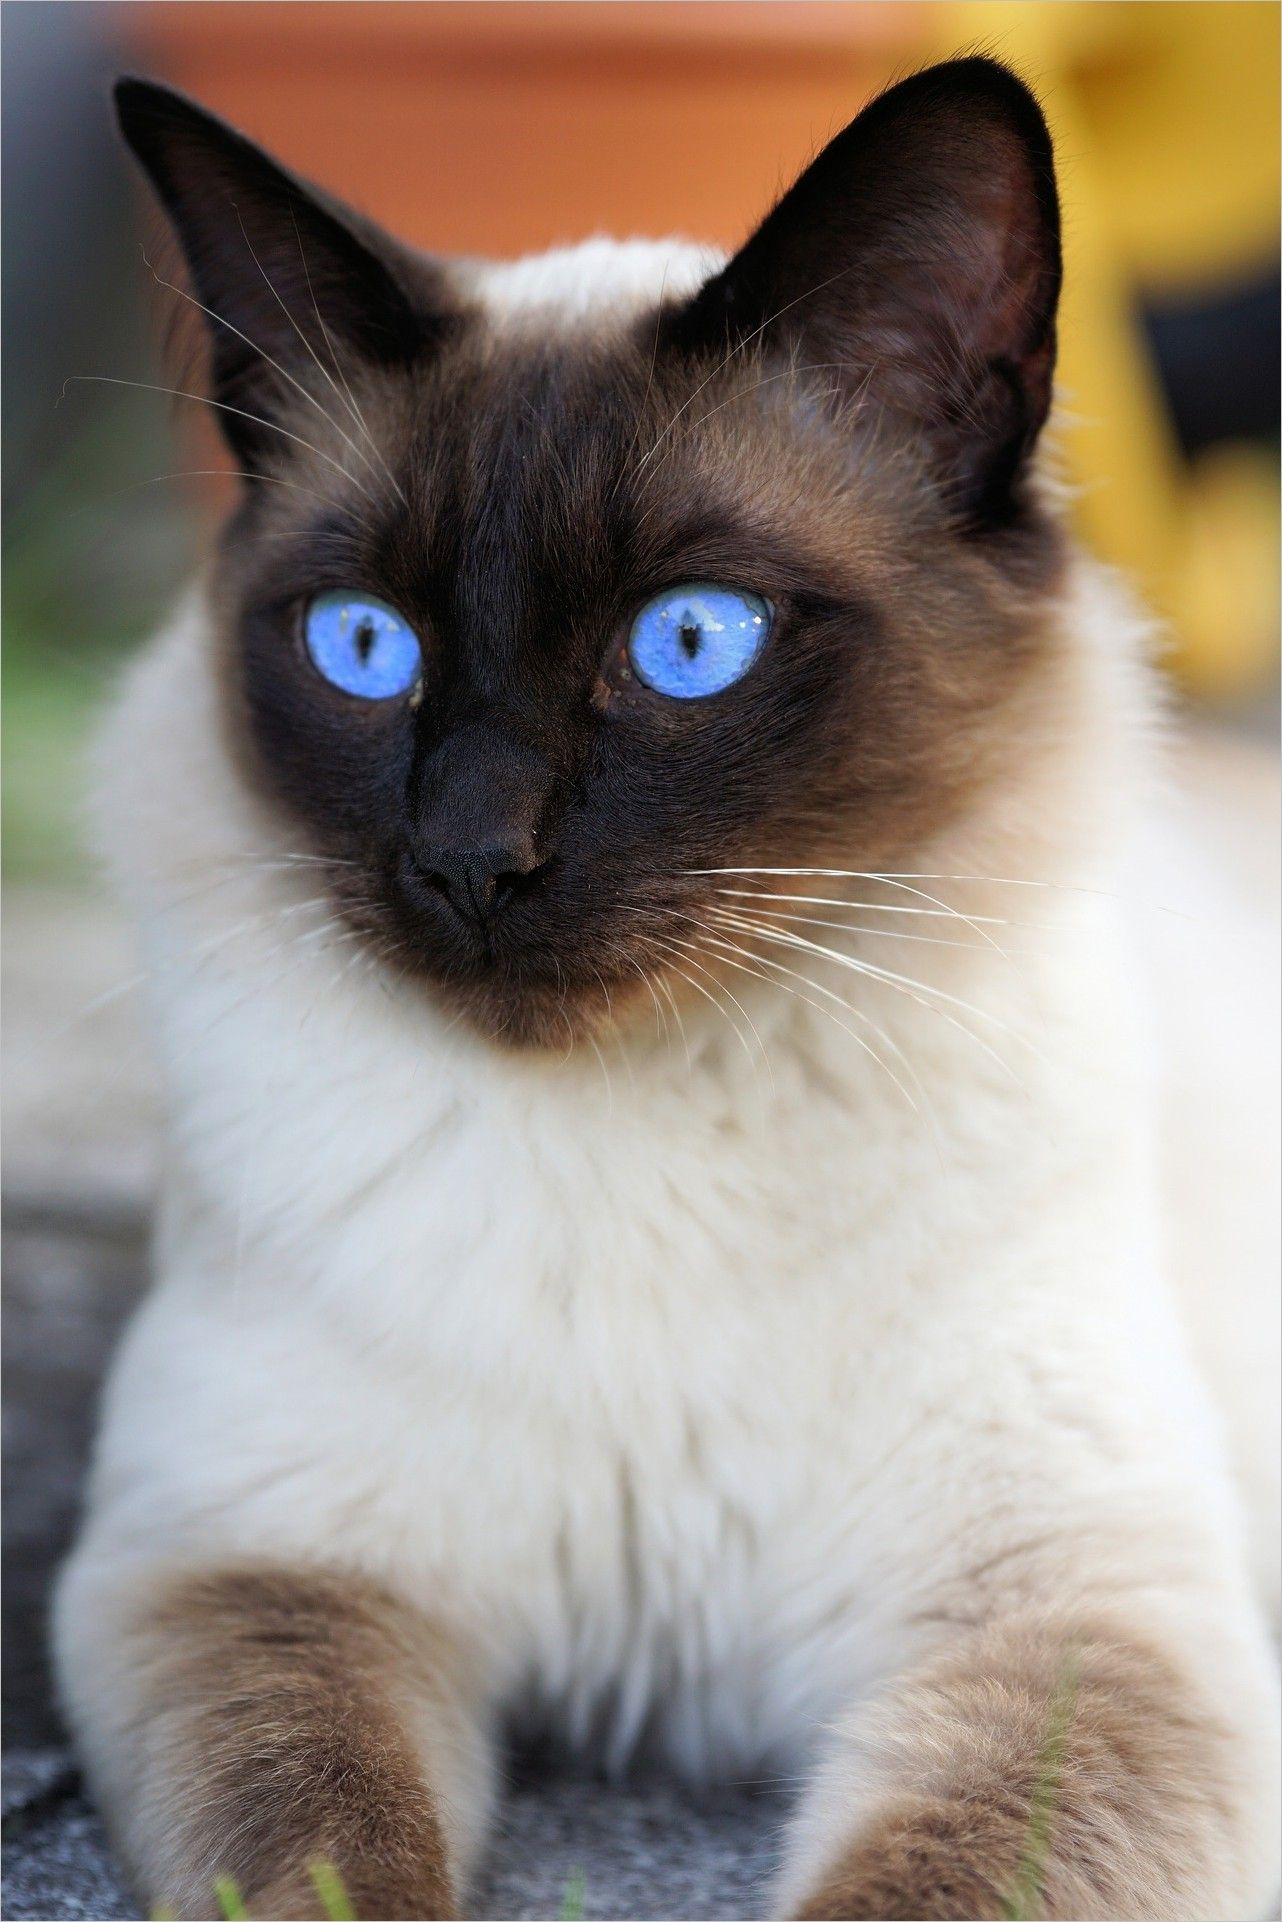 Cat Wallpaper Img Pictures Cat Eyes Siam Siamese Cat Cat Domestic Cat Mieze Breed